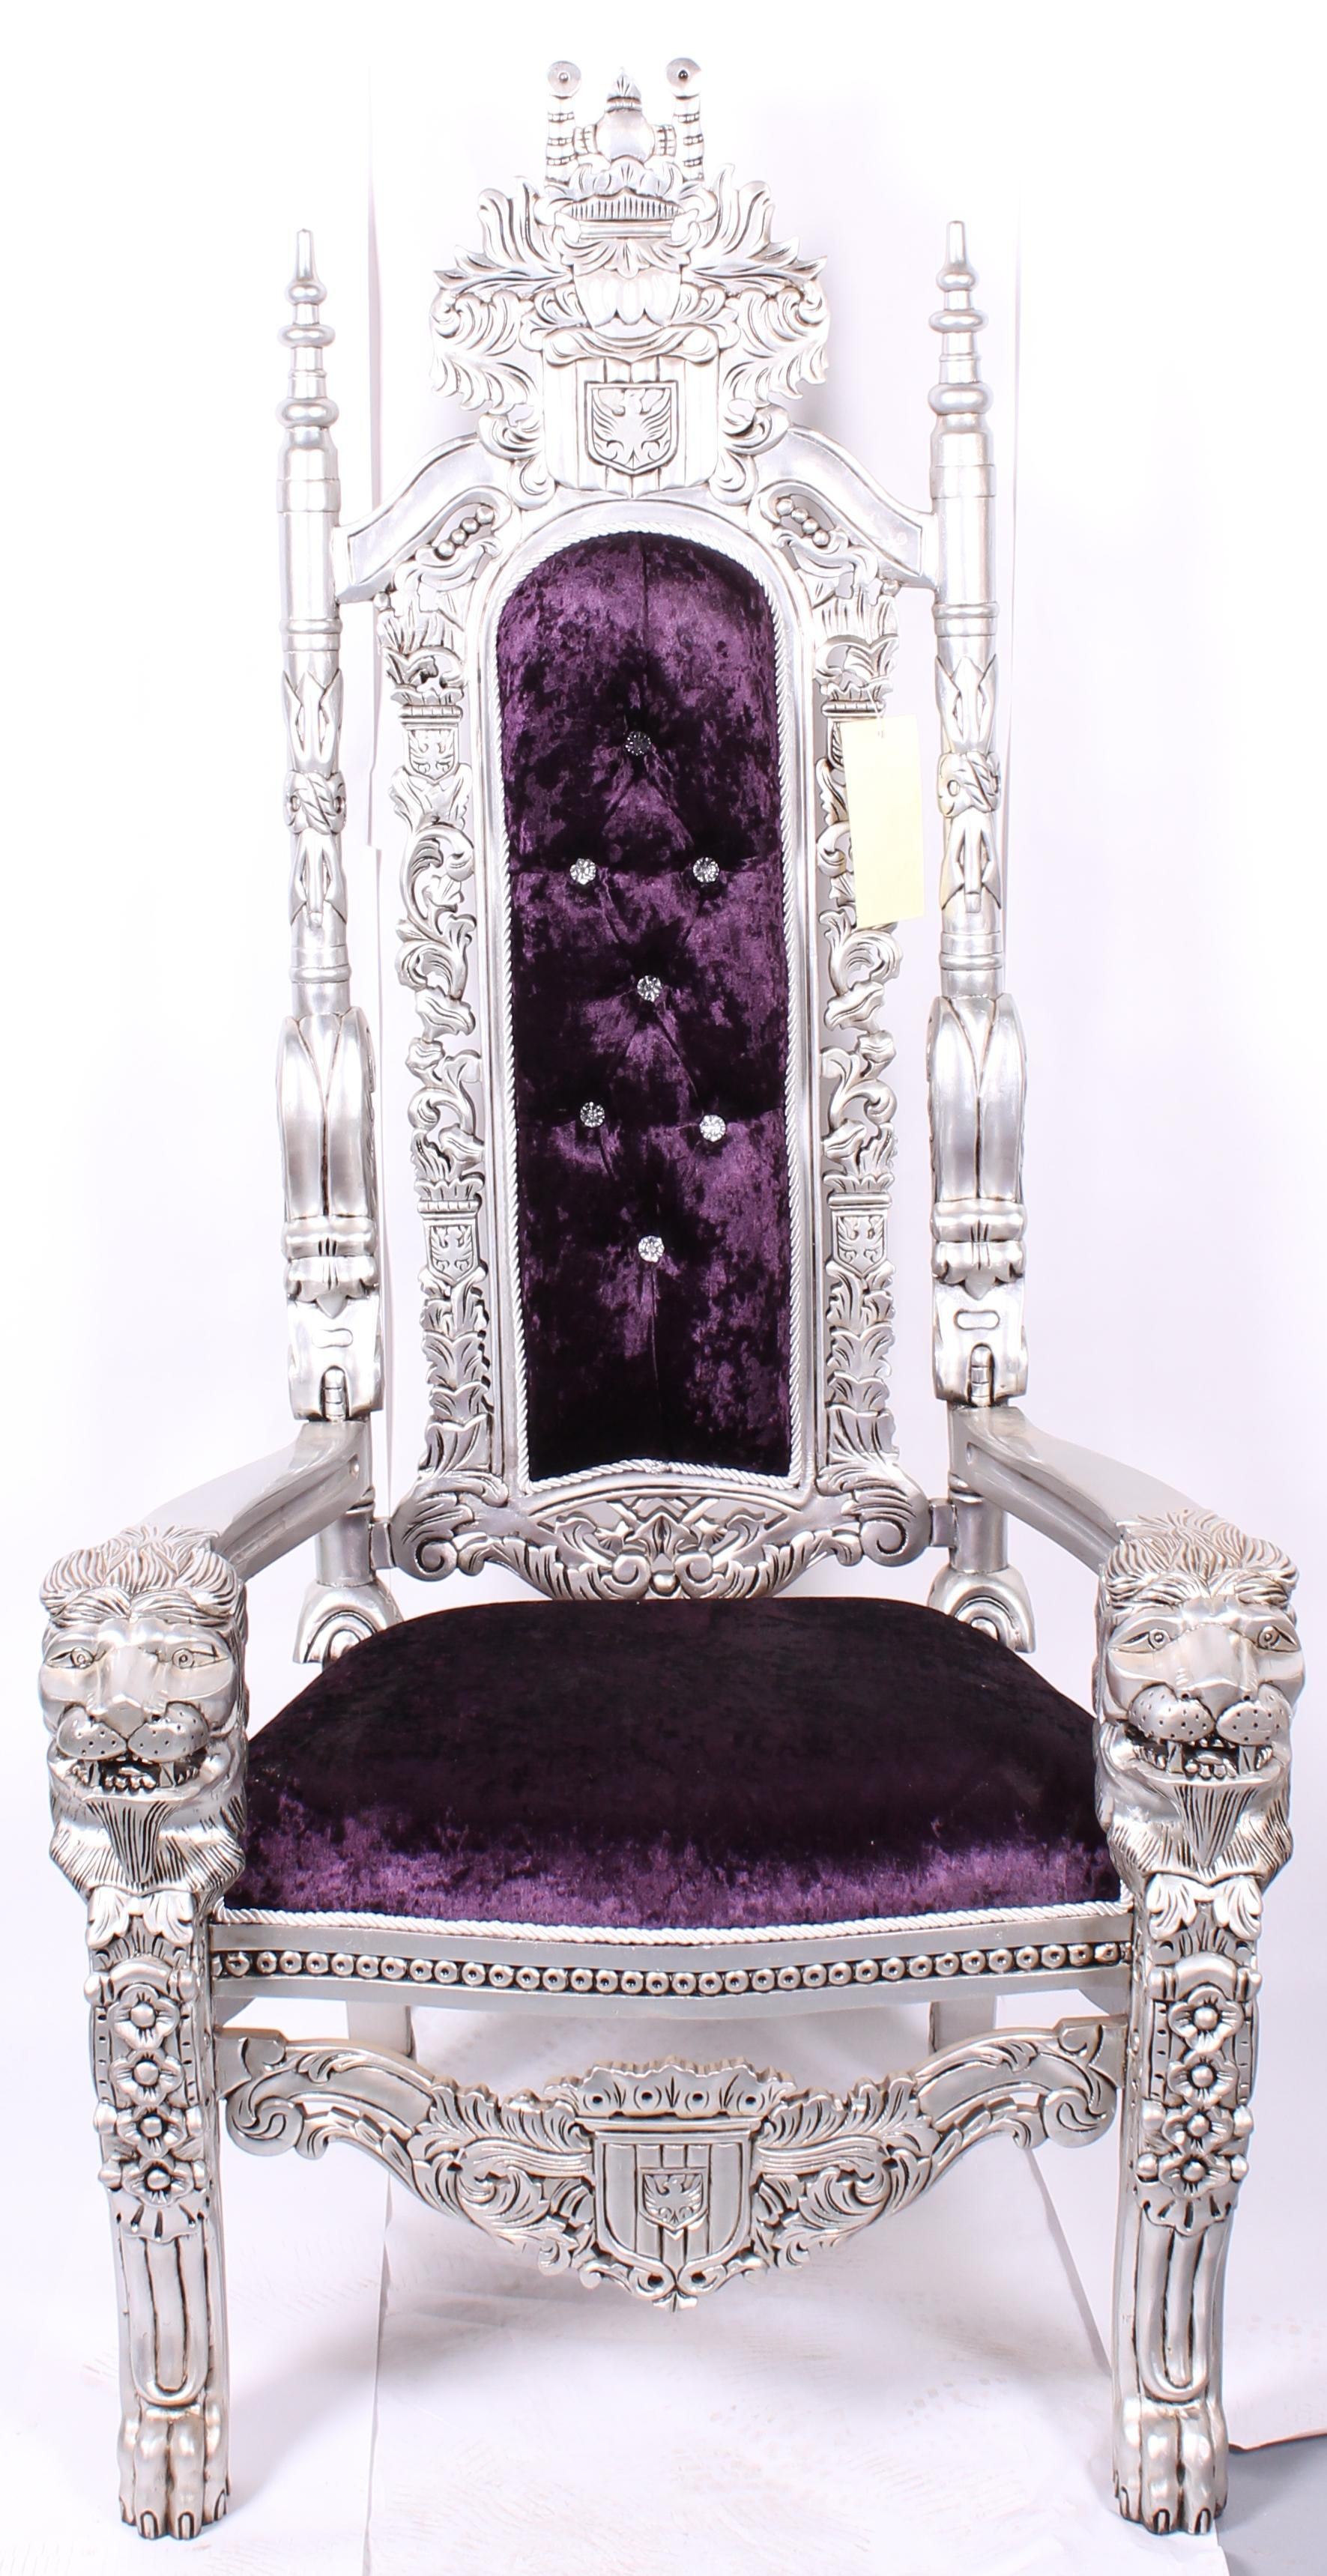 Hollywood Regency Lion King Chair For Sale - Image 3 of 3  sc 1 st  Chairish & Lion King Chair | Chairish